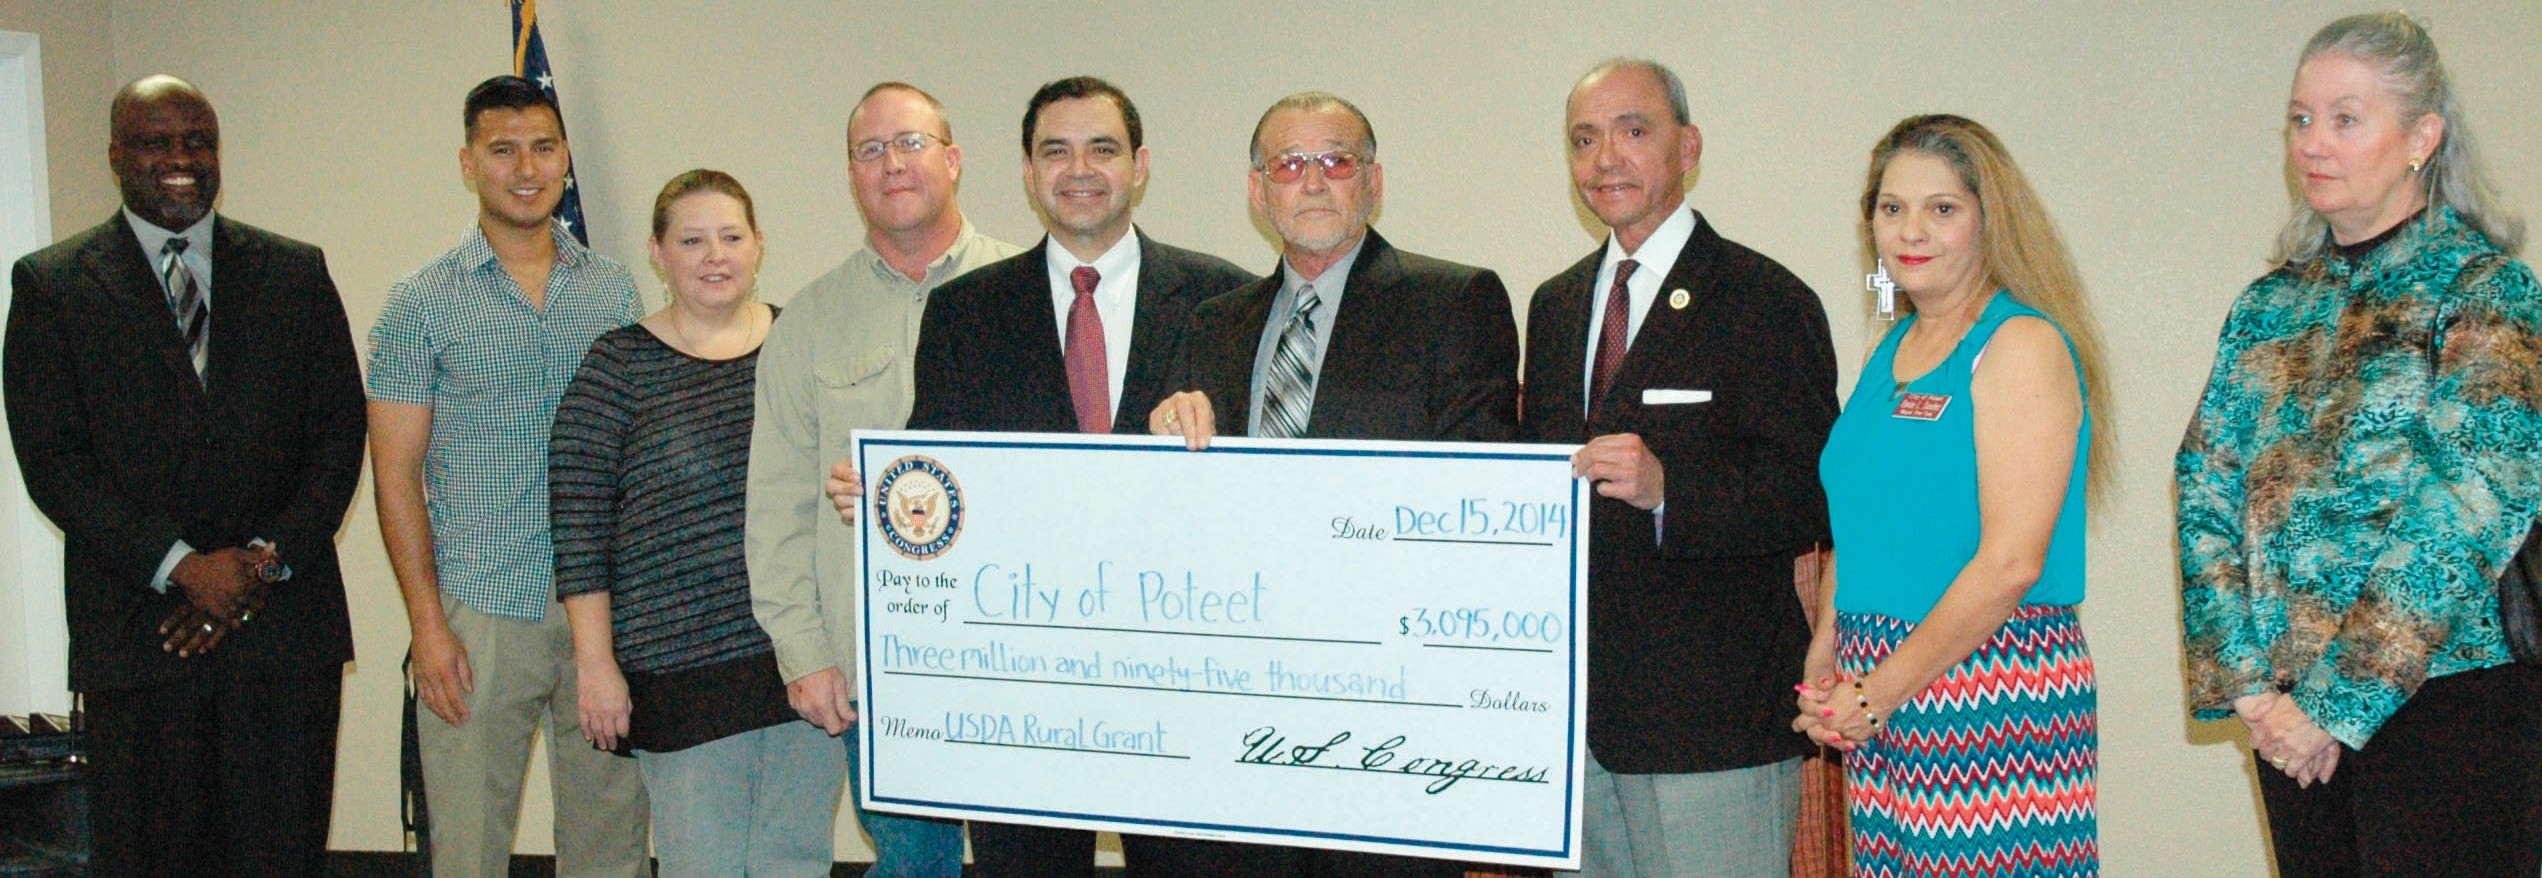 Congressman Henry Cuellar (D-TX28), presented a check of over $3 million from the USDA to the City of Poteet on Monday. Left to right are: City Administrator Scott Moore, Poteet Council Members Sonny Estrada, Vanessa Saylor, Greg Groesbeck, Congressman Cuellar, Poteet Mayor Larry Cantu, USDAState Director Paco Valentin, Council Member Denise Sanchez and Atascosa County Judge Diana Bautista. Not pictured is Council Member Valerie Reyes Hernandez.